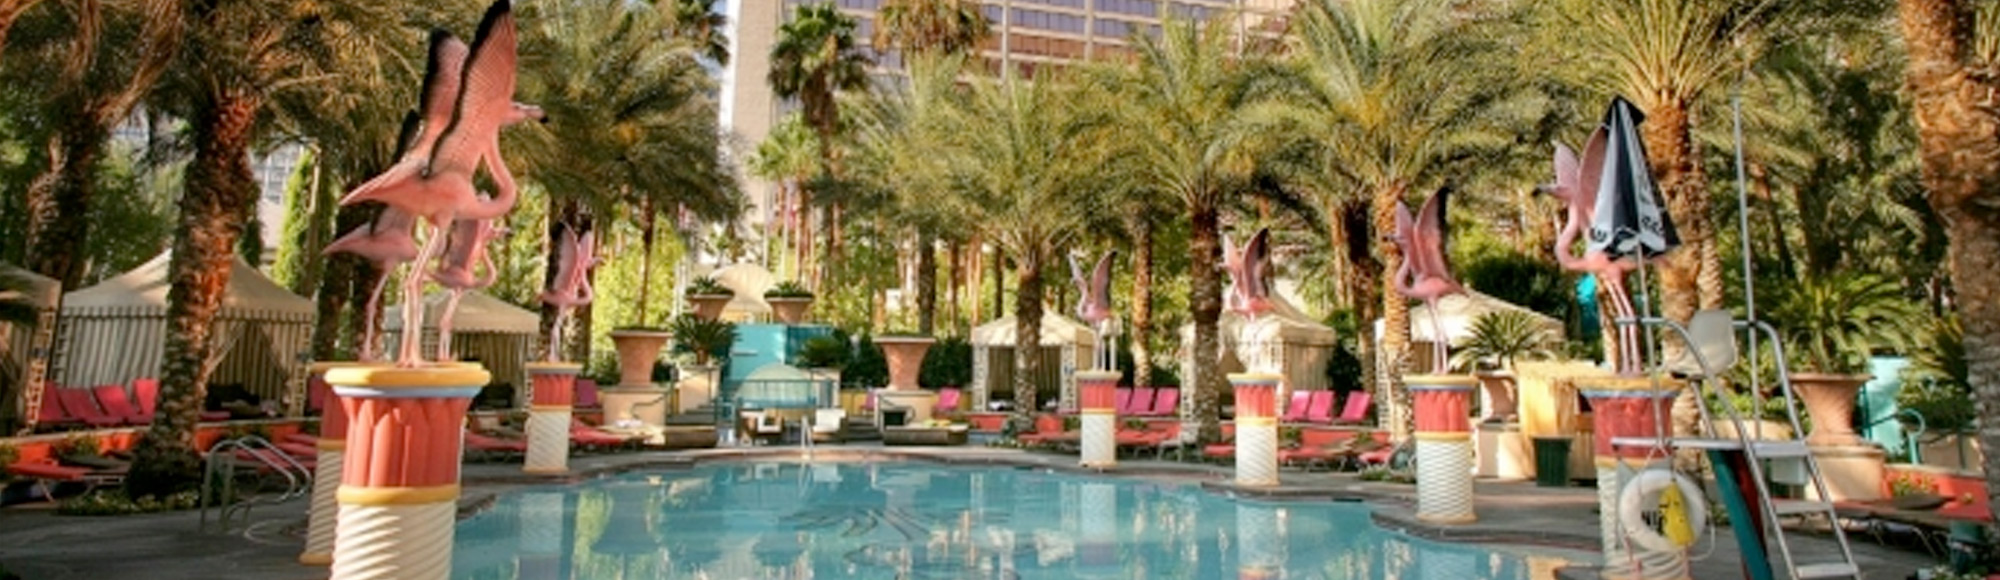 Flamingo Pool Vegas Rules Las Vegas Hotels Shows Tours Clubs More